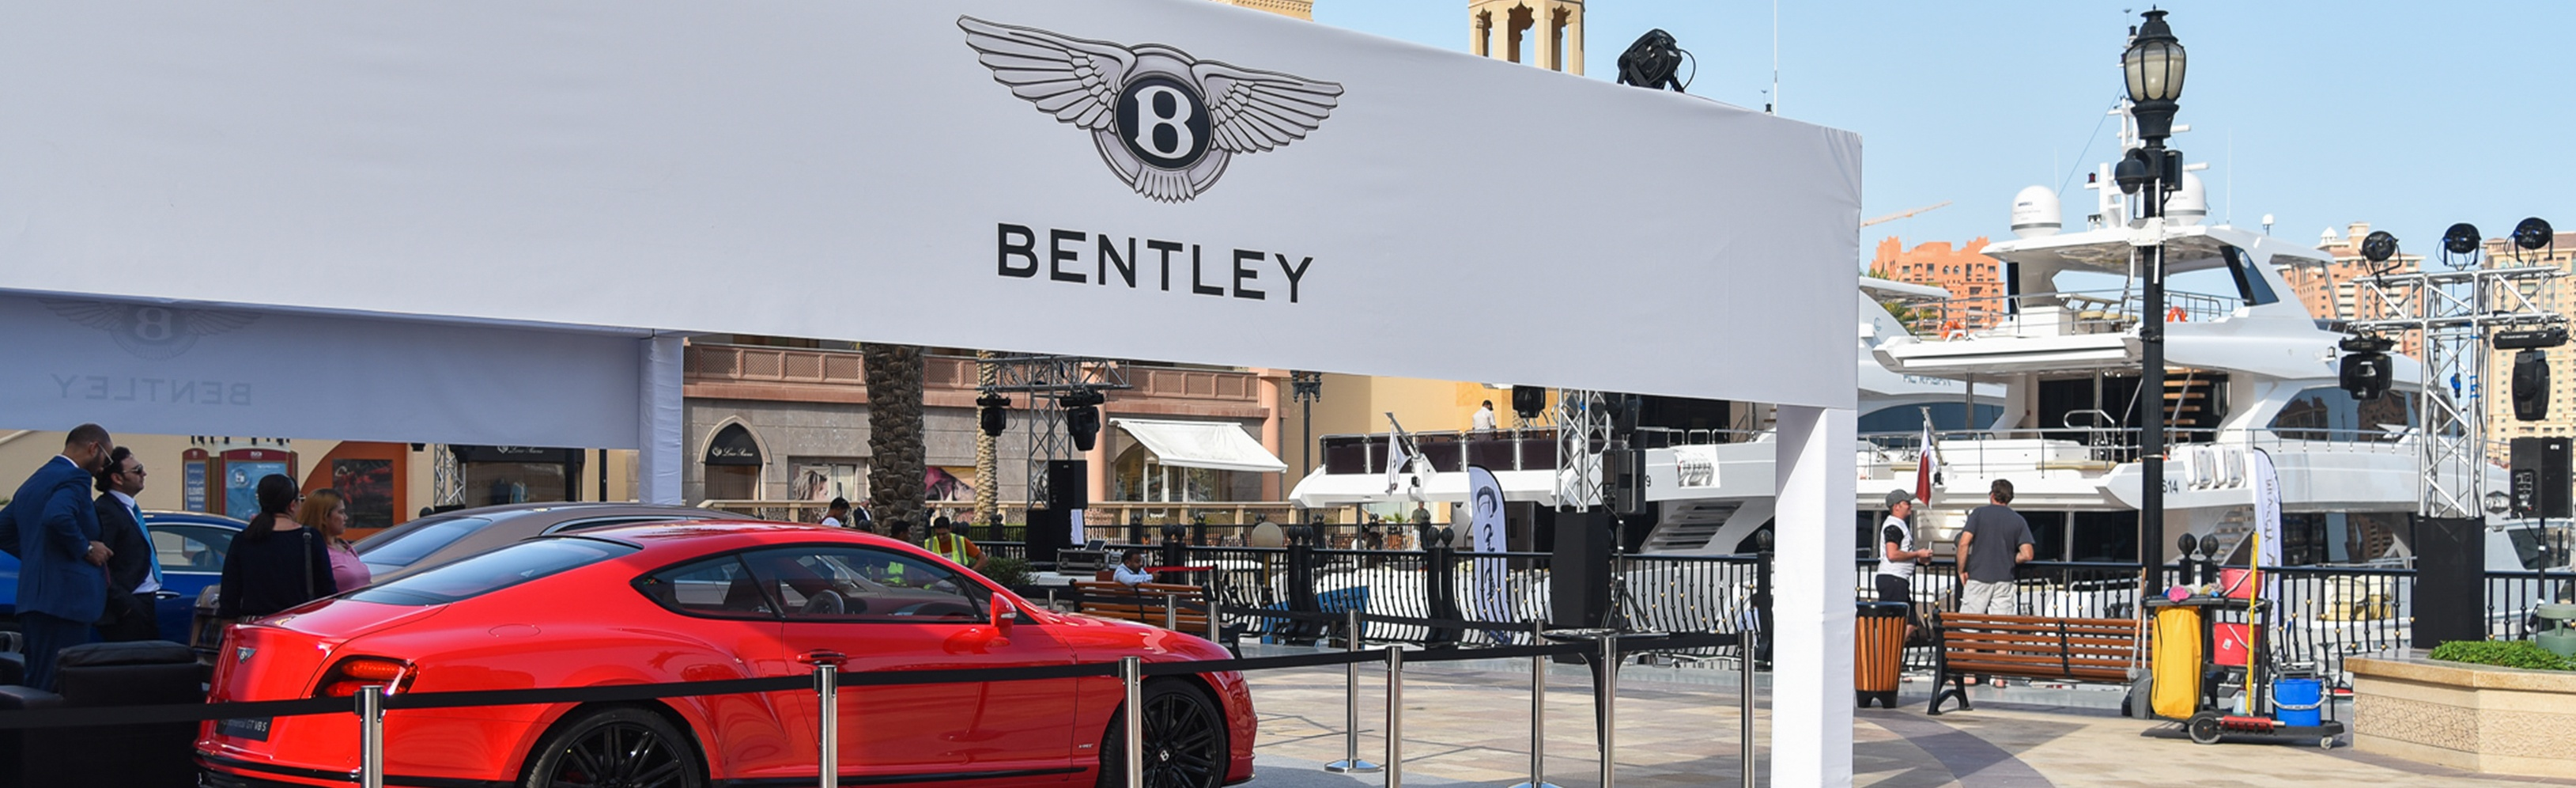 Bentley,-Gulf-Craft-Qatar-Exclusive-Preview.jpg